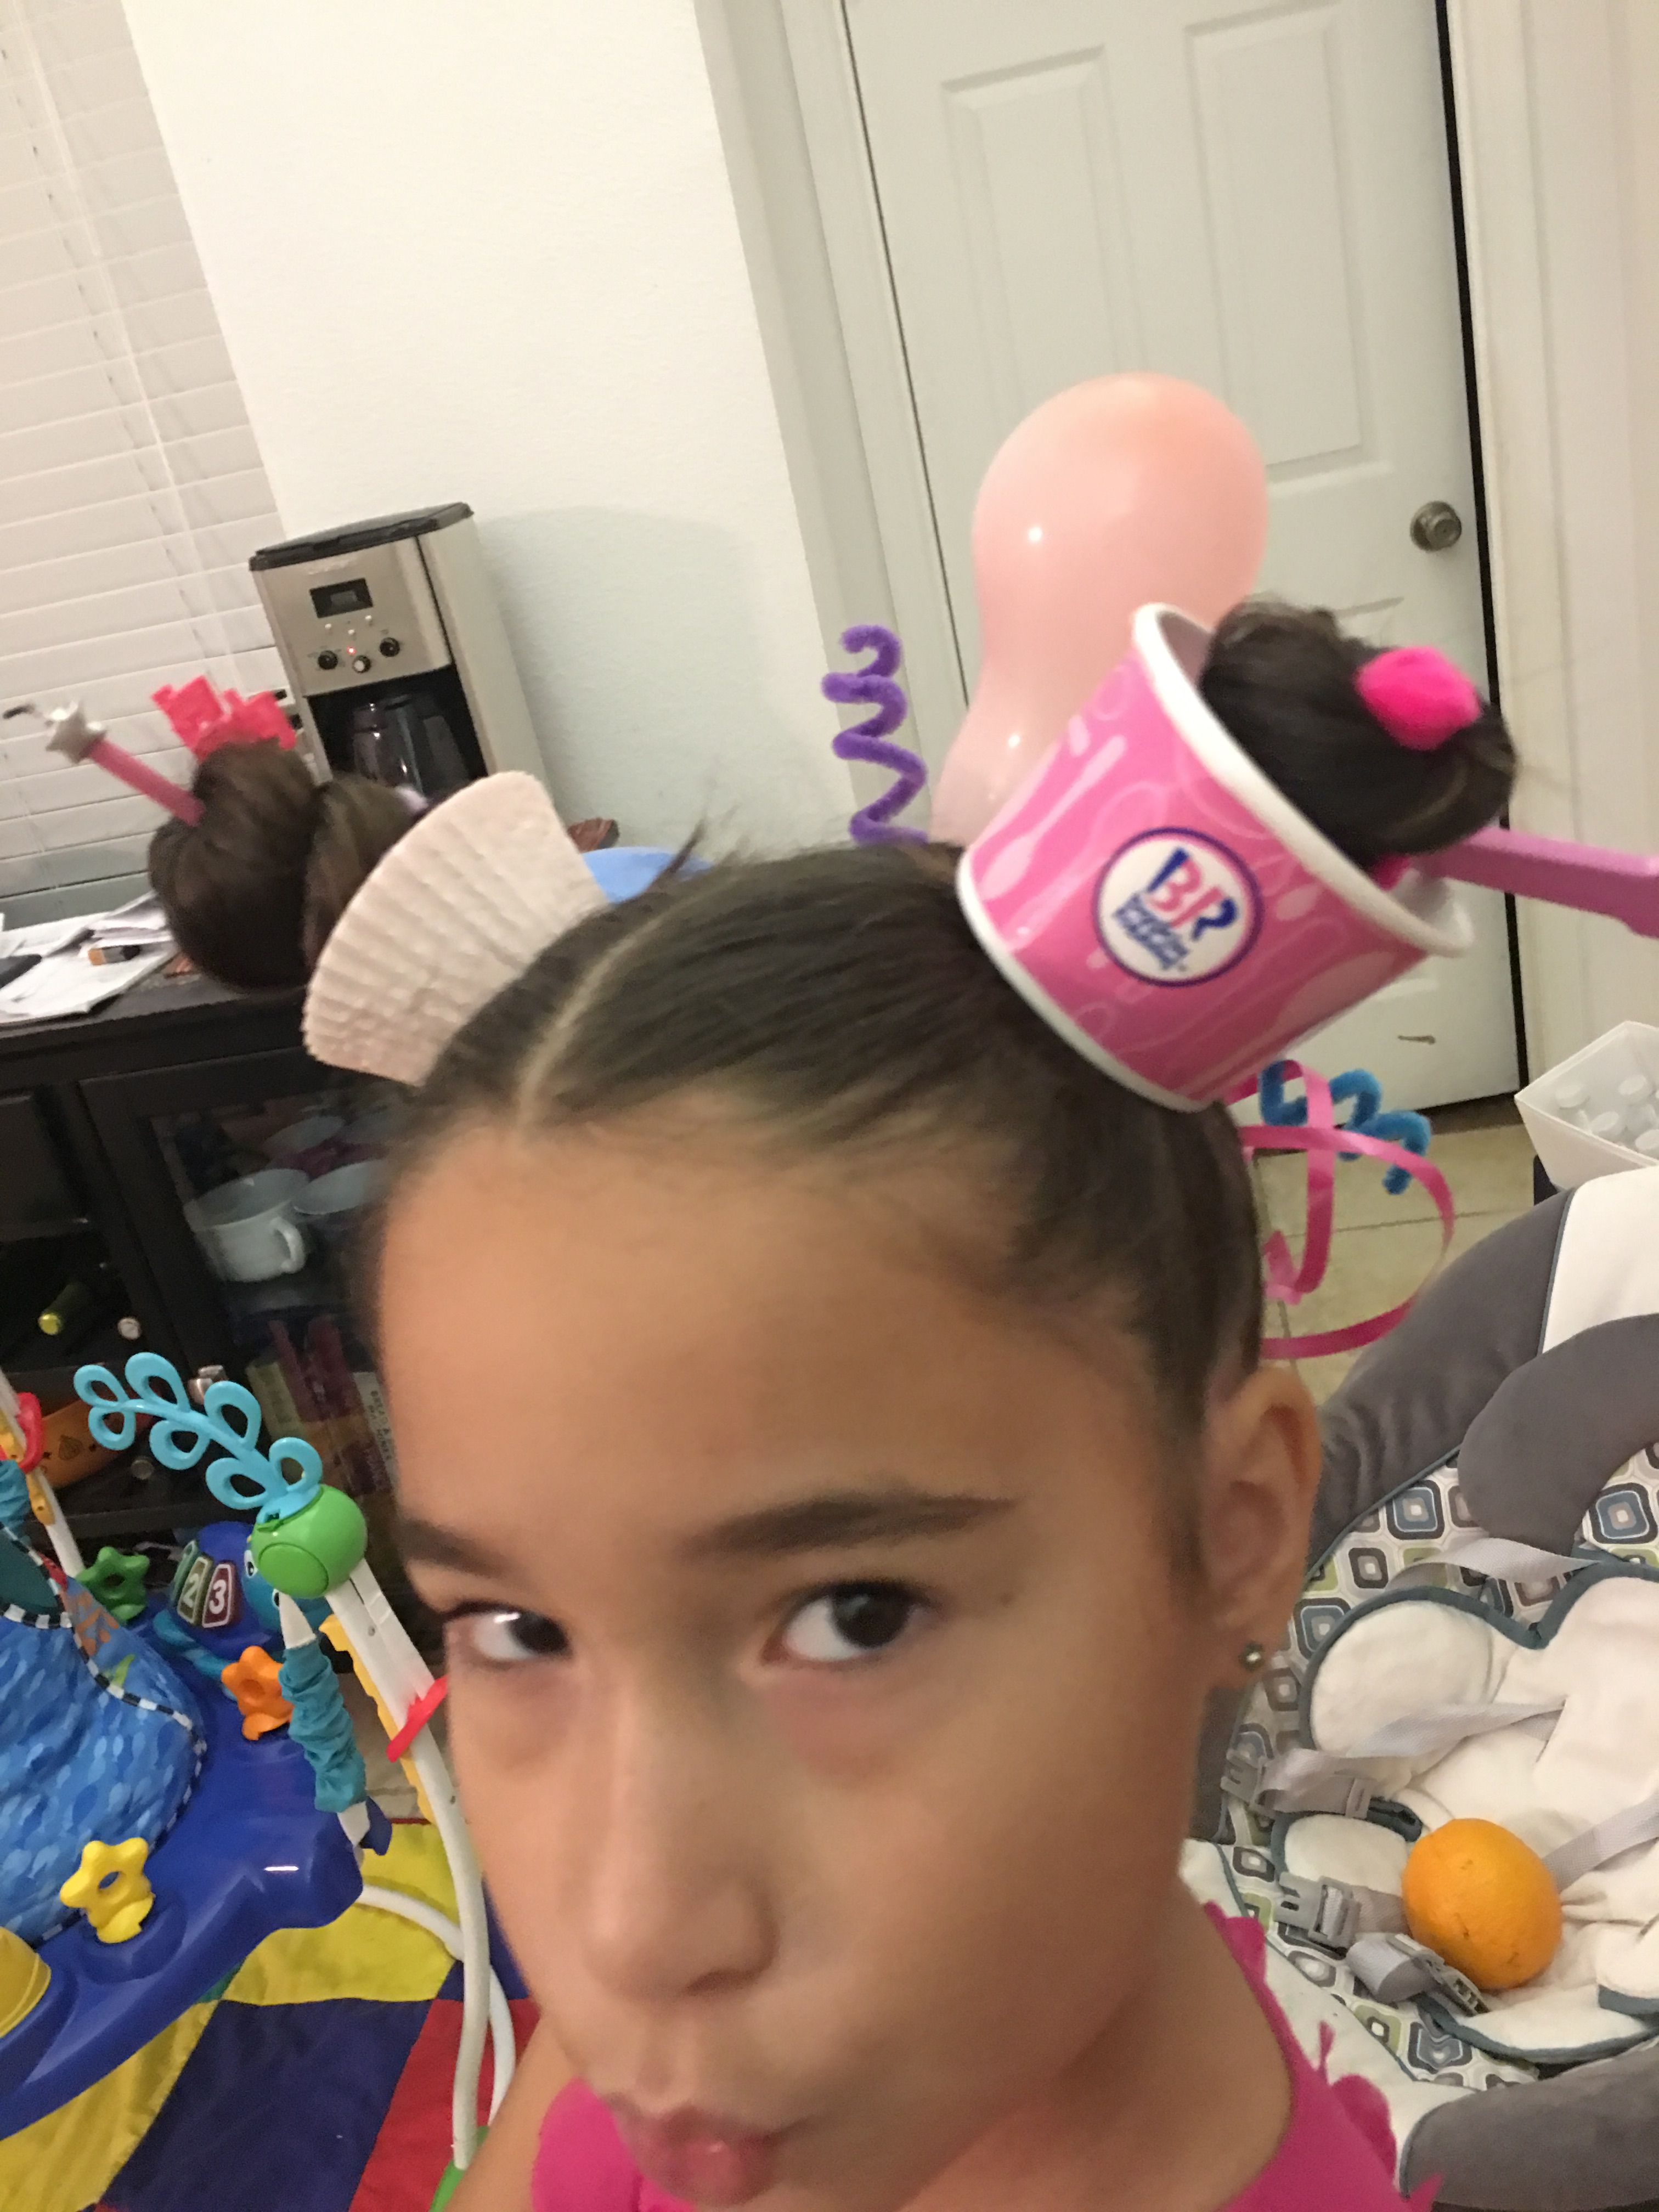 Crazy Hair Day Diy Crafts To Sell Diy Crafts For Kids Crafts For Kids